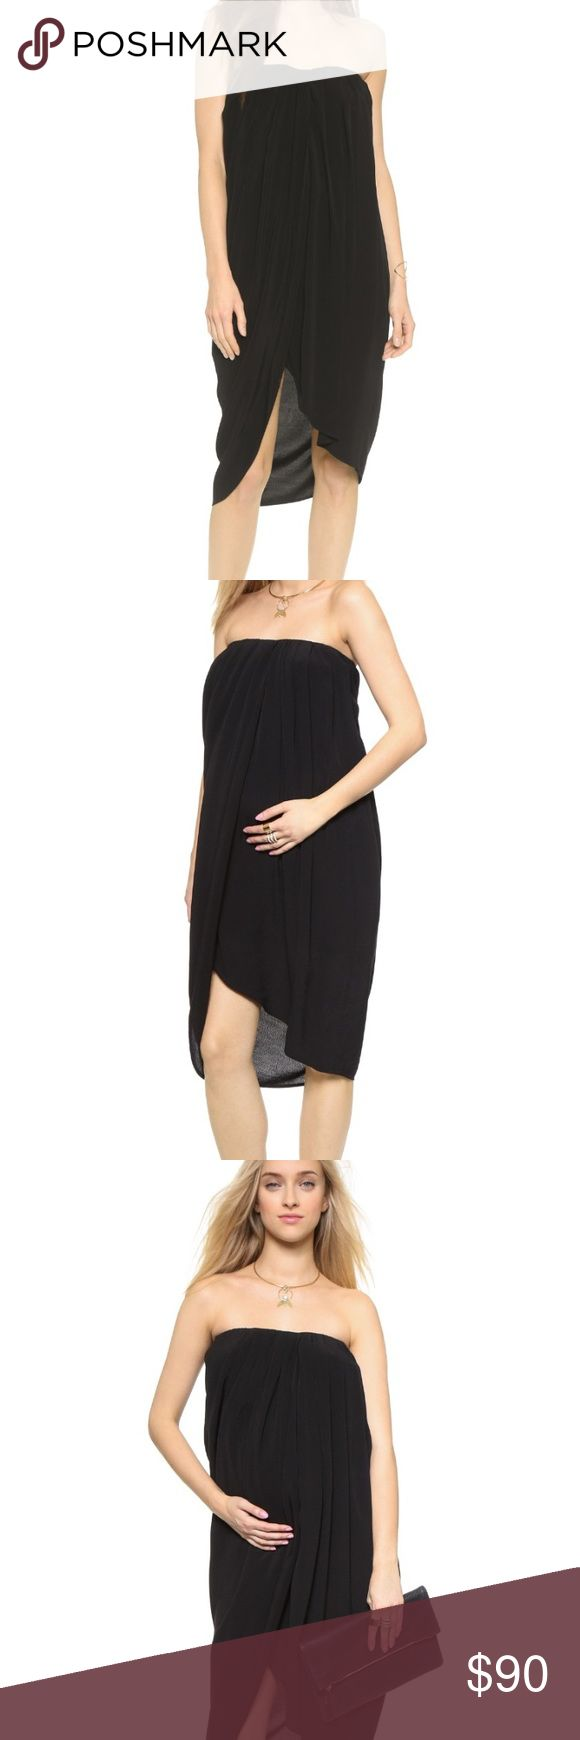 """HATCH """"PANAMA"""" MATERNITY DRESS A strapless and super stylish HATCH dress styled in voluminous crepe with a front slit. Perfect for a special night out or babymoon!  The dress is designed to grow with you through your pregnancy. Ruched, covered elastic neckline. Built-in shelf bra. Lined. 50% rayon/50% viscose. Measurements.  Length: 35in / 89cm Hatch Dresses High Low"""